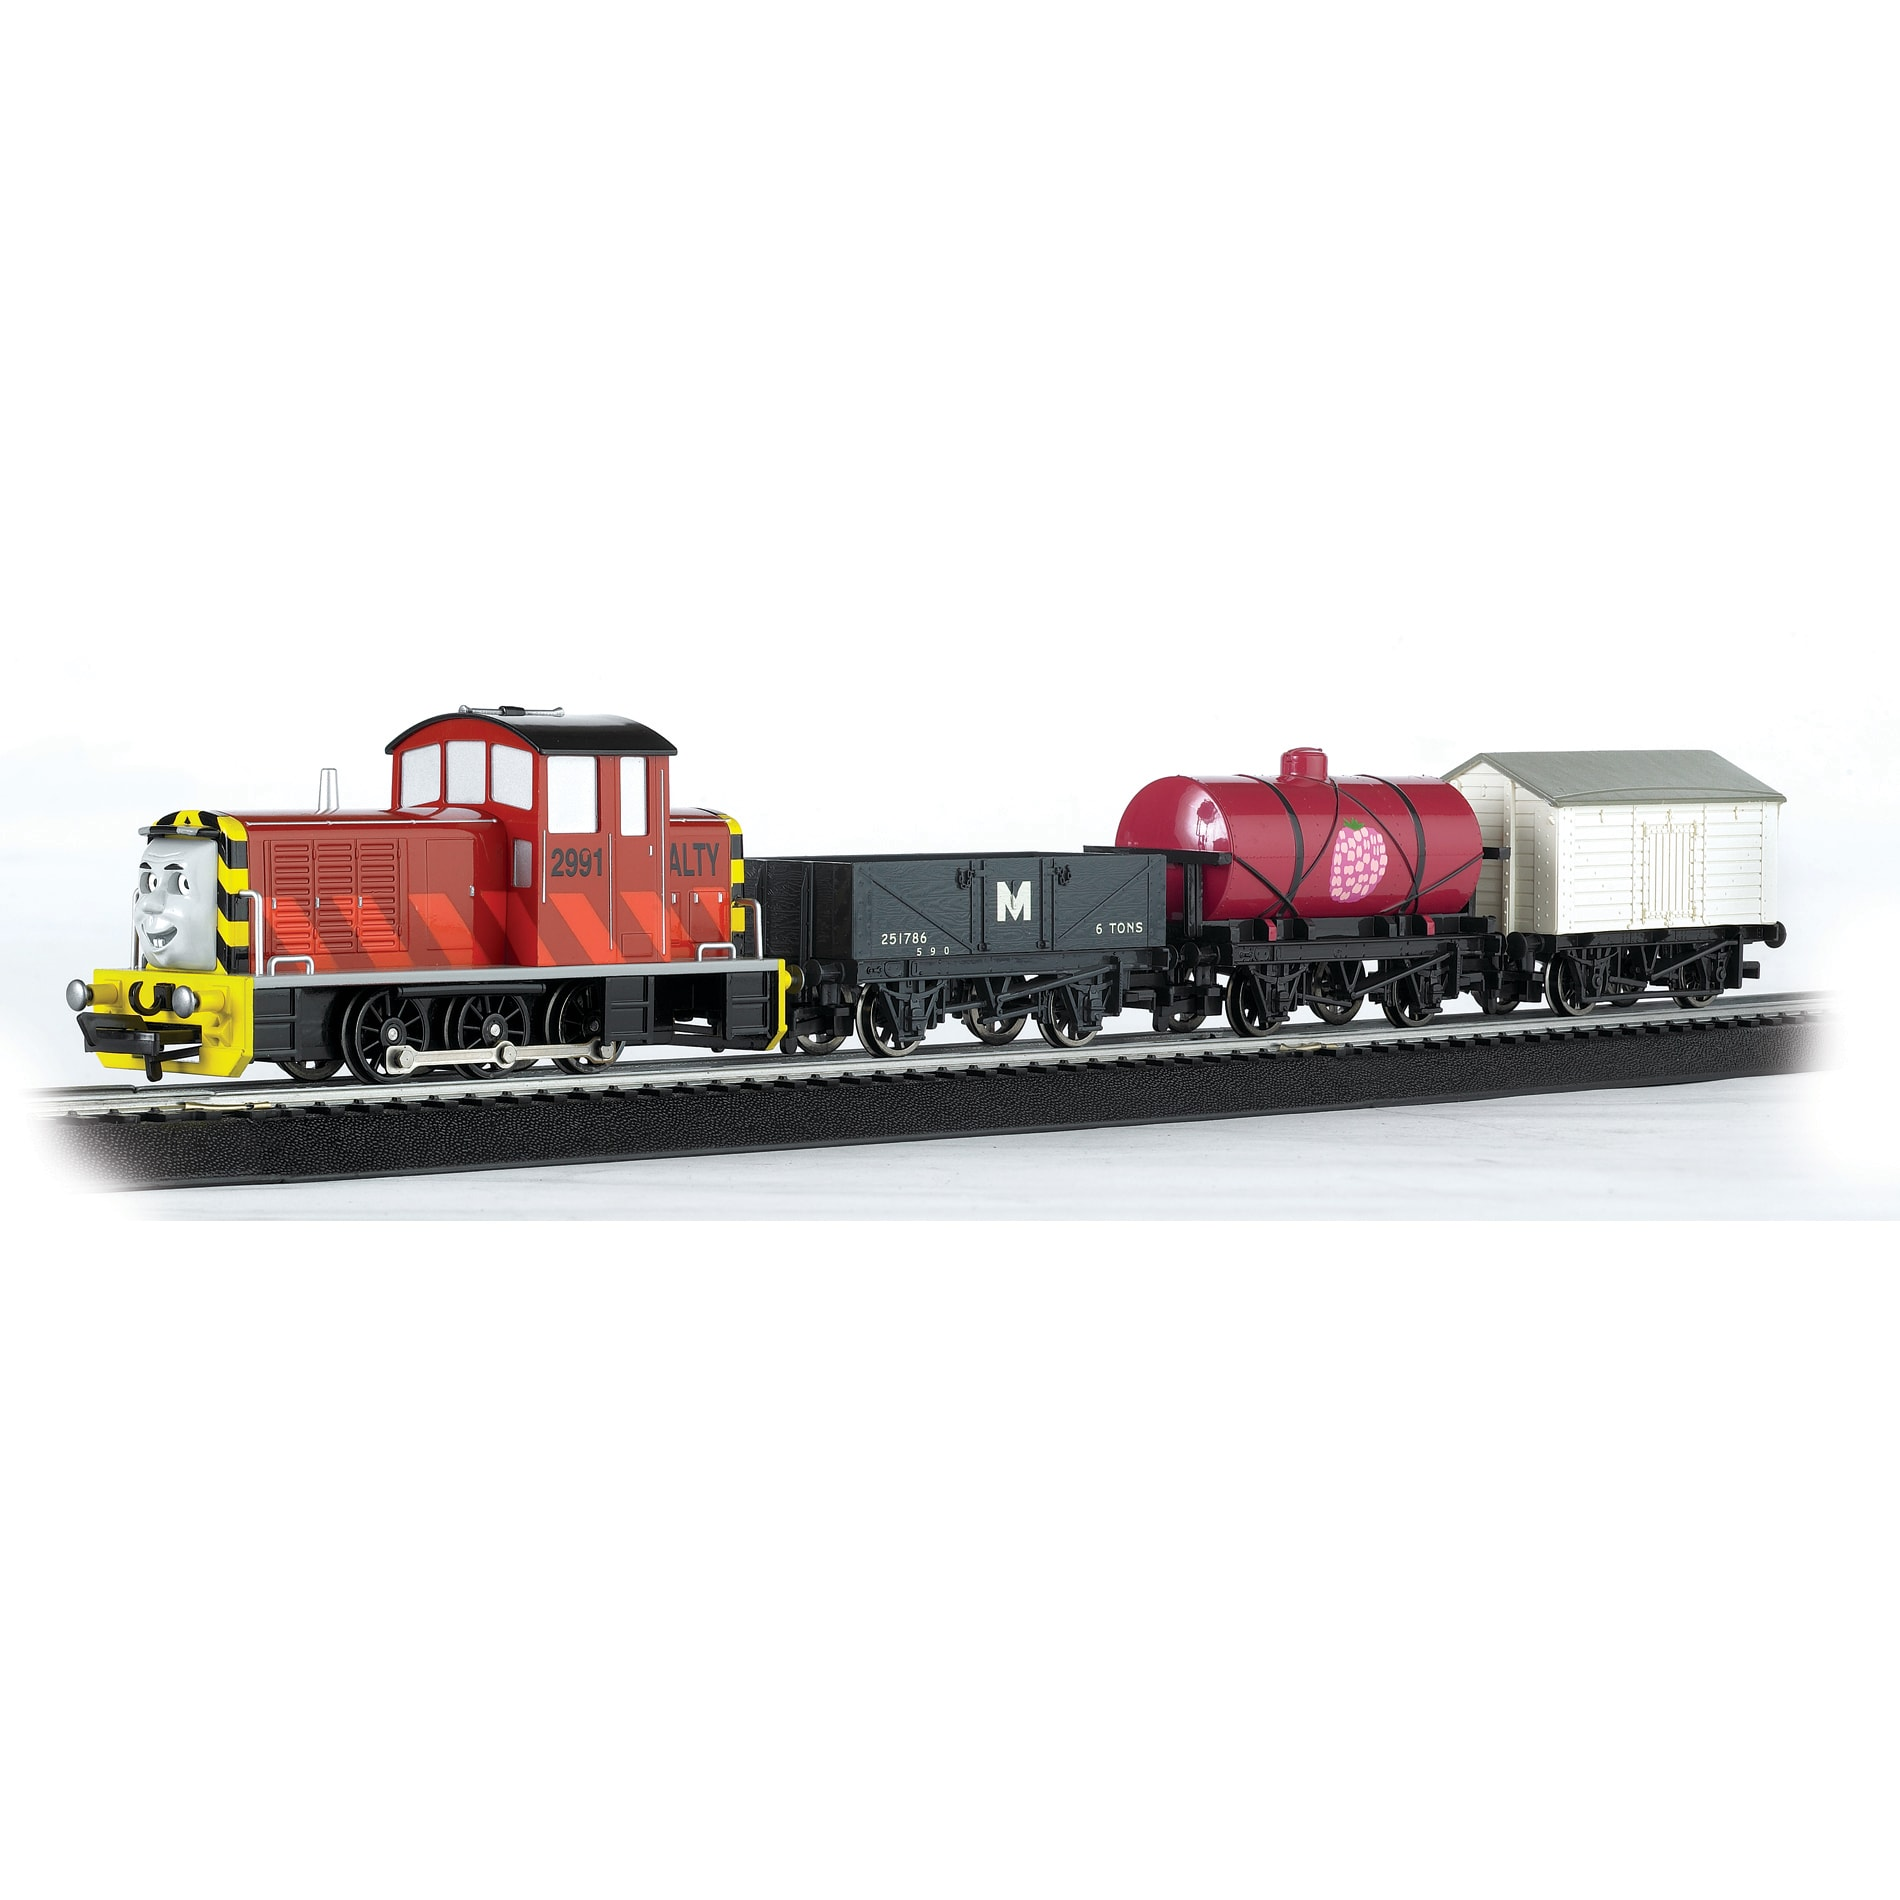 Thomas and friends henrietta train engine toy